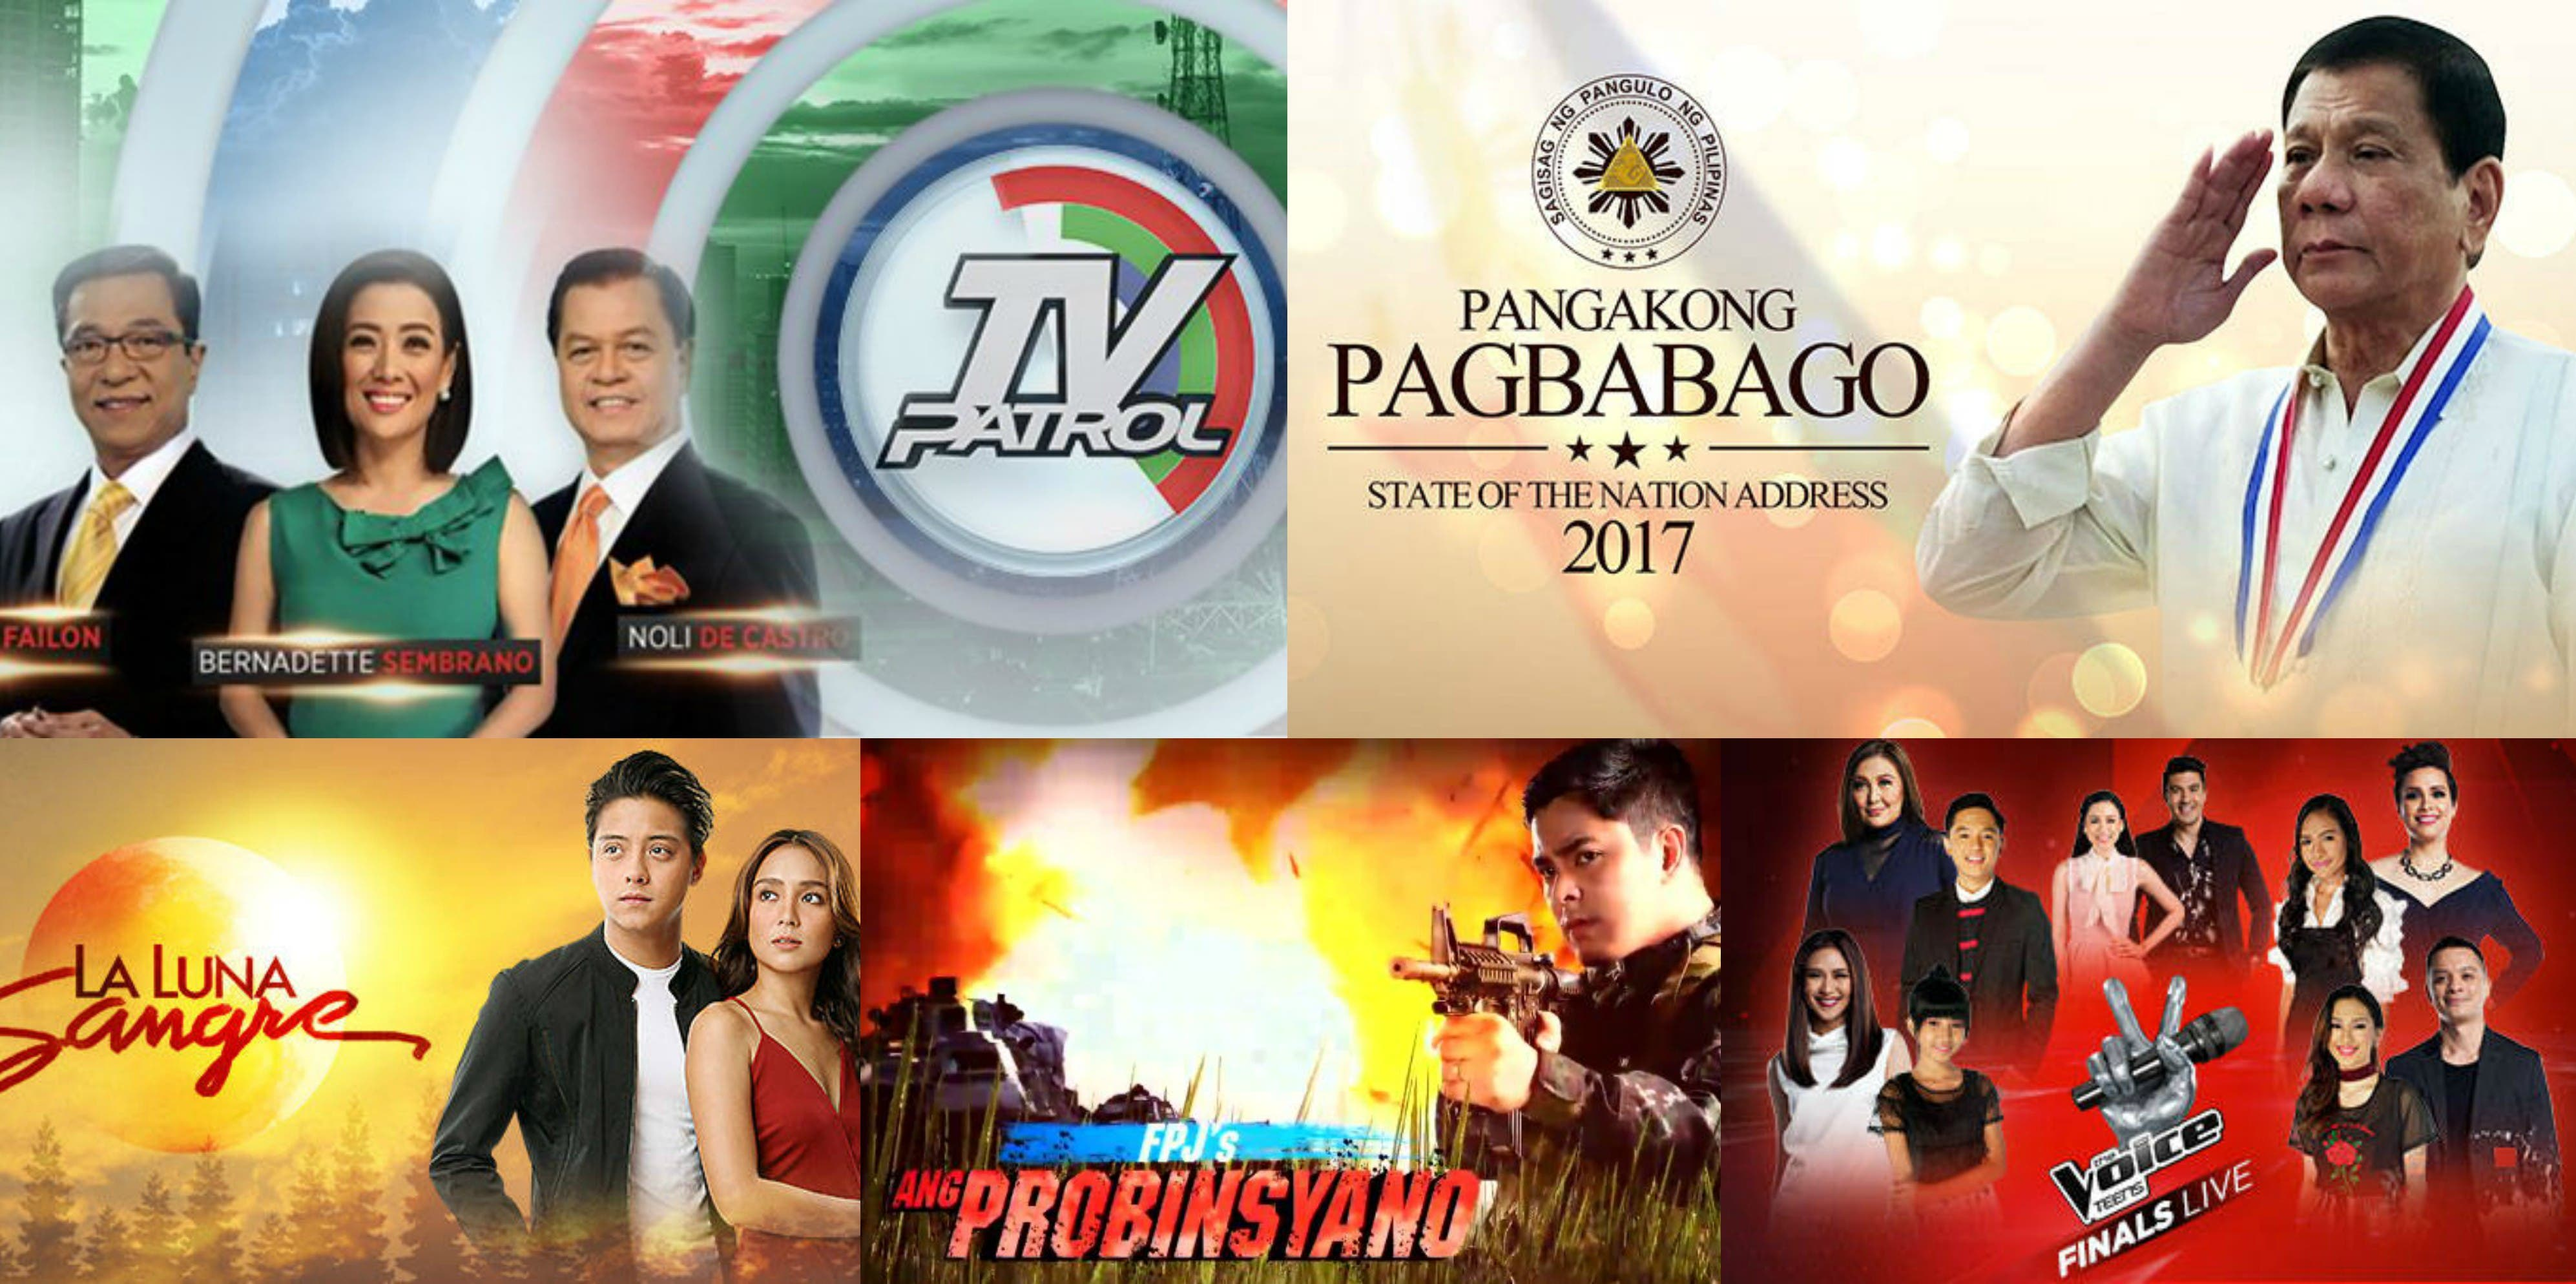 Abs cbn celebrity and entertainment news